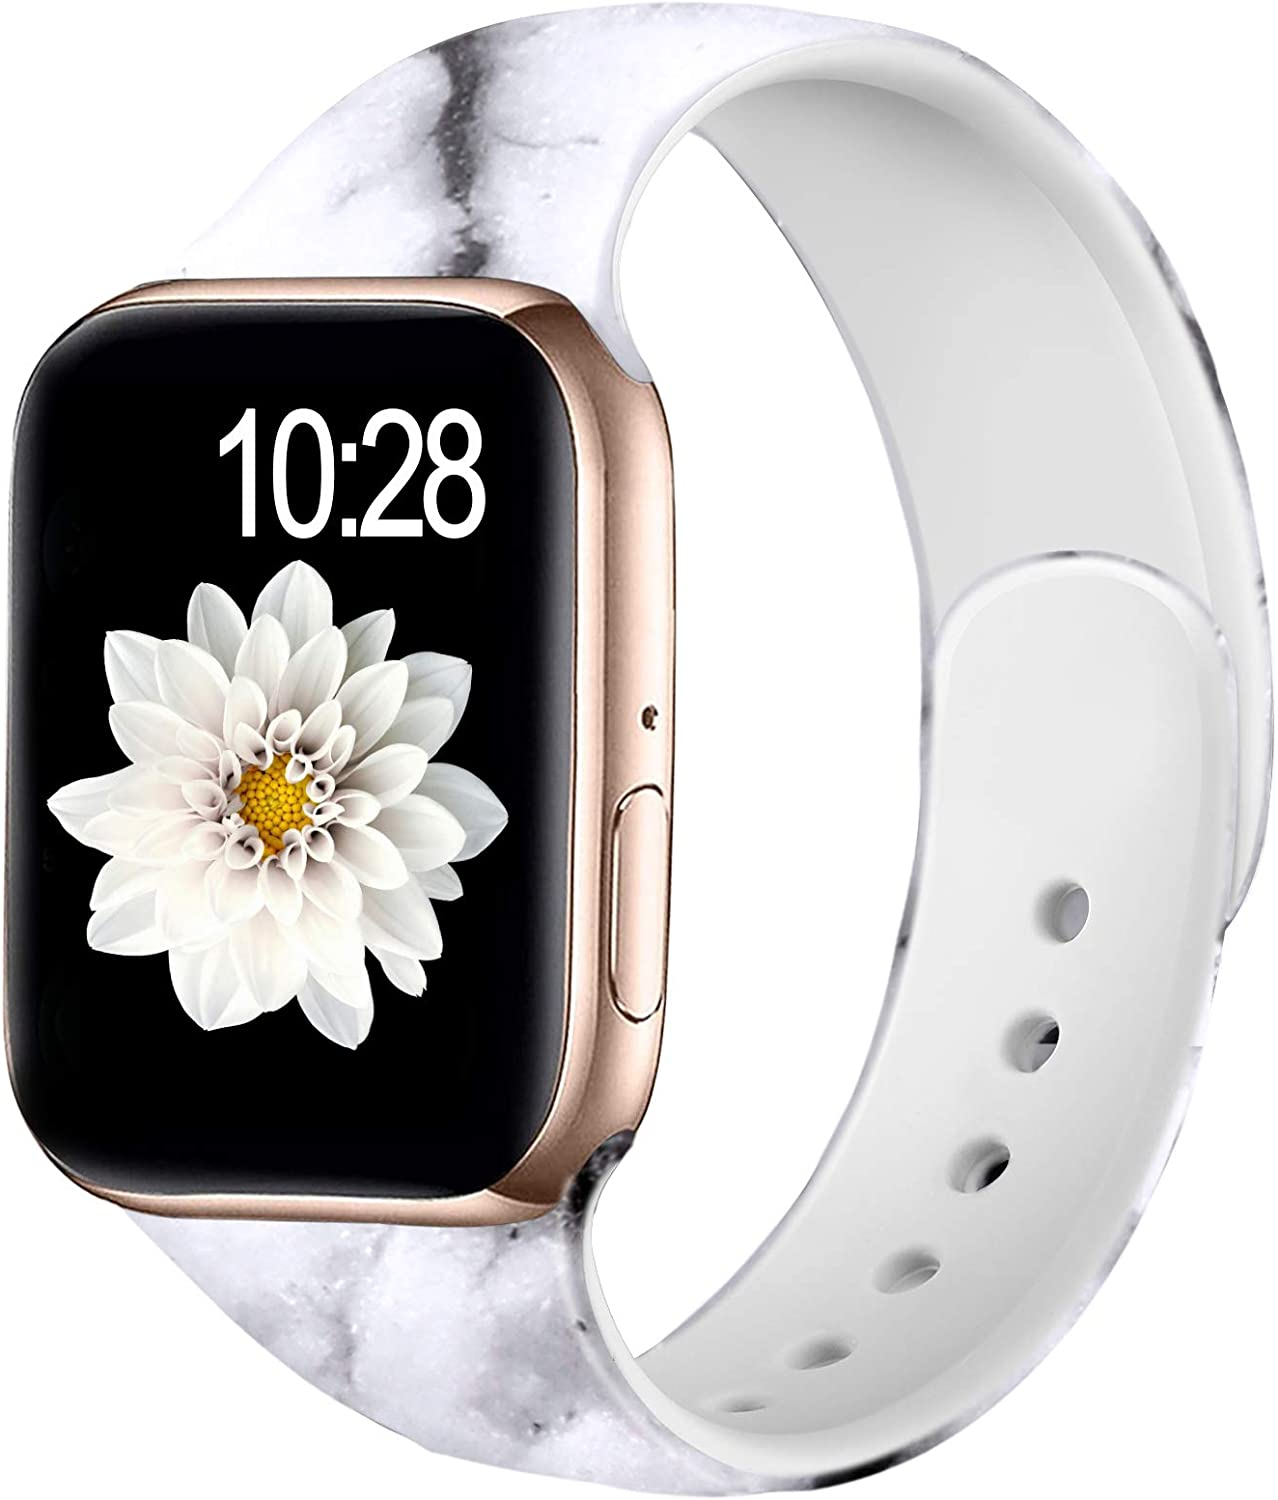 Adorve Floral Bands Compatible with Apple Watch Band 38mm 40mm iWatch SE & Series 6 & Series 5 4 3 2 1 for Women Men, White Marble S/M